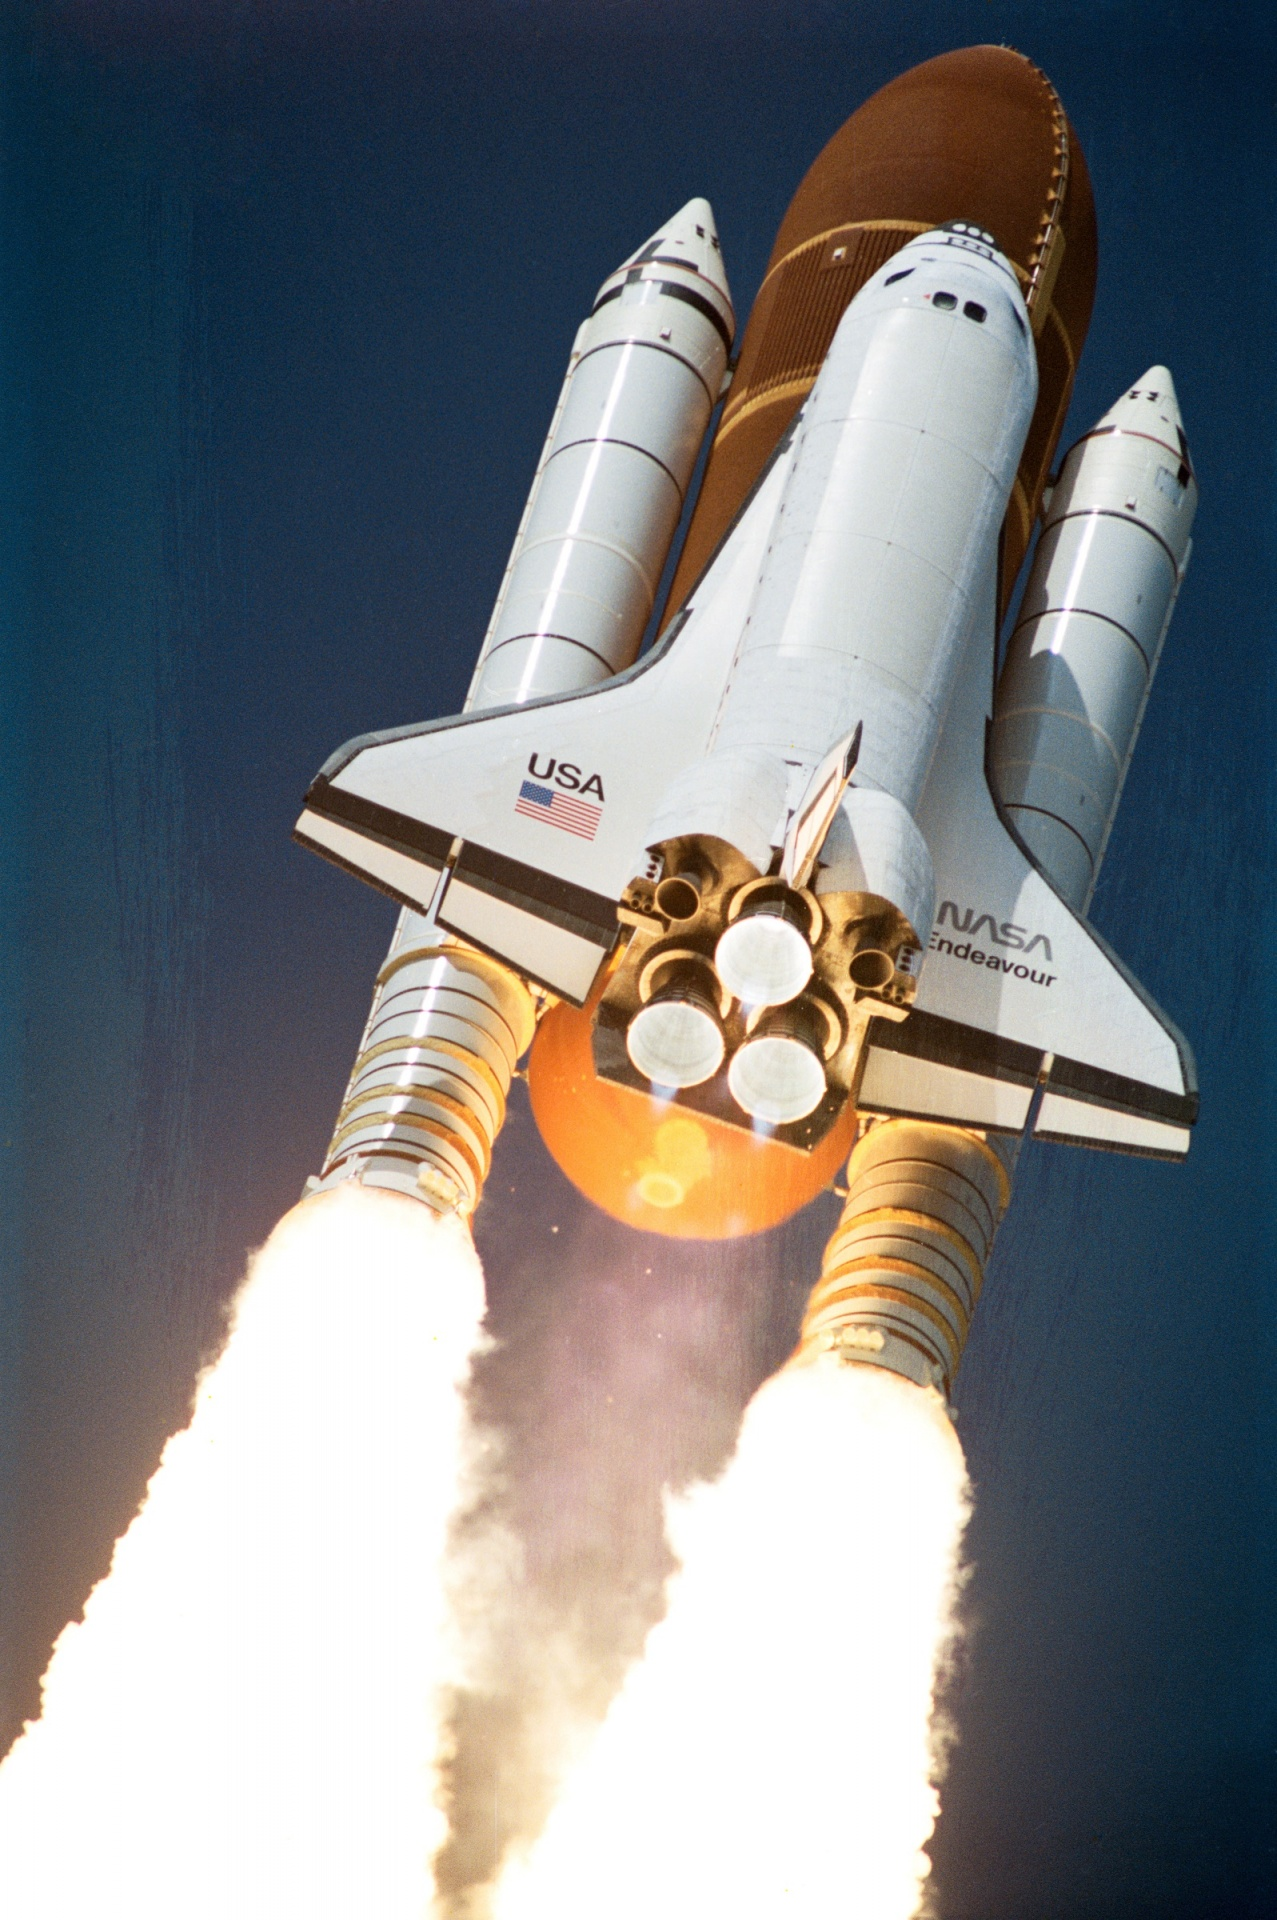 Space Shuttle Launch Free Stock Photo - Public Domain Pictures